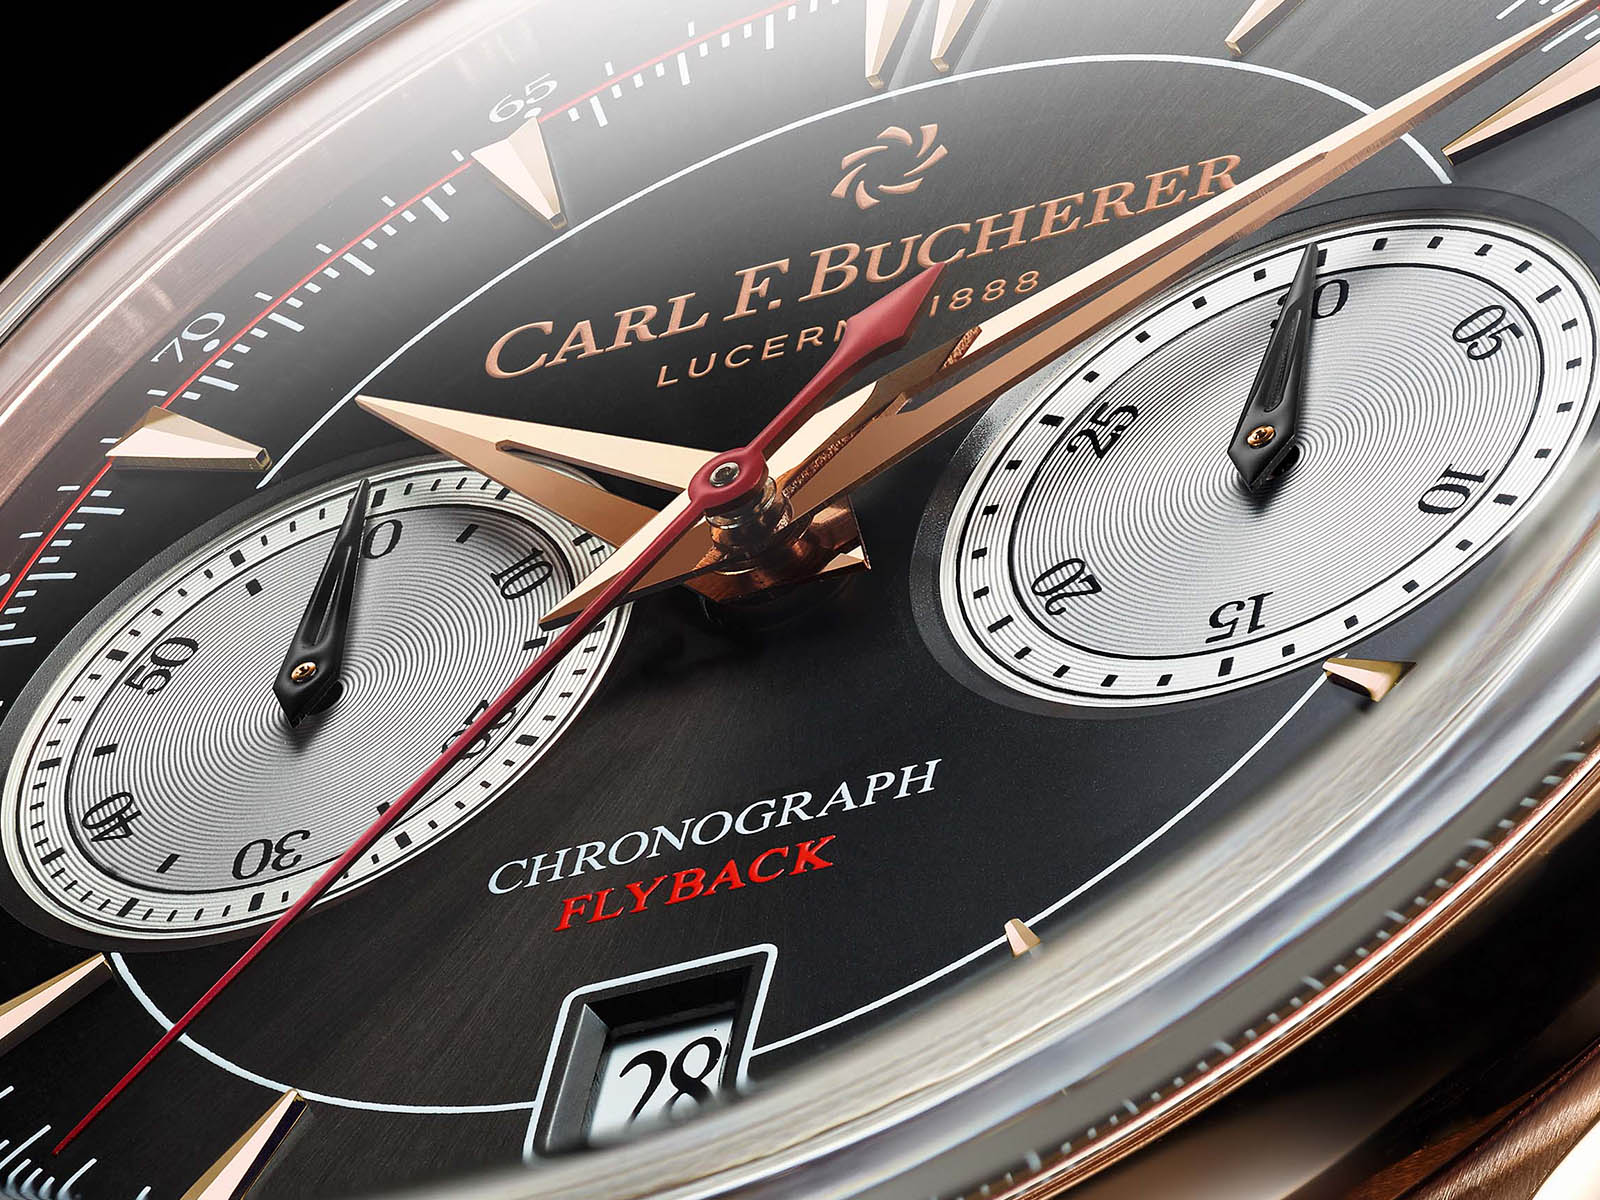 00-10919-03-33-02-carl-f-bucherer-manero-flyback-rose-gold-8.jpg